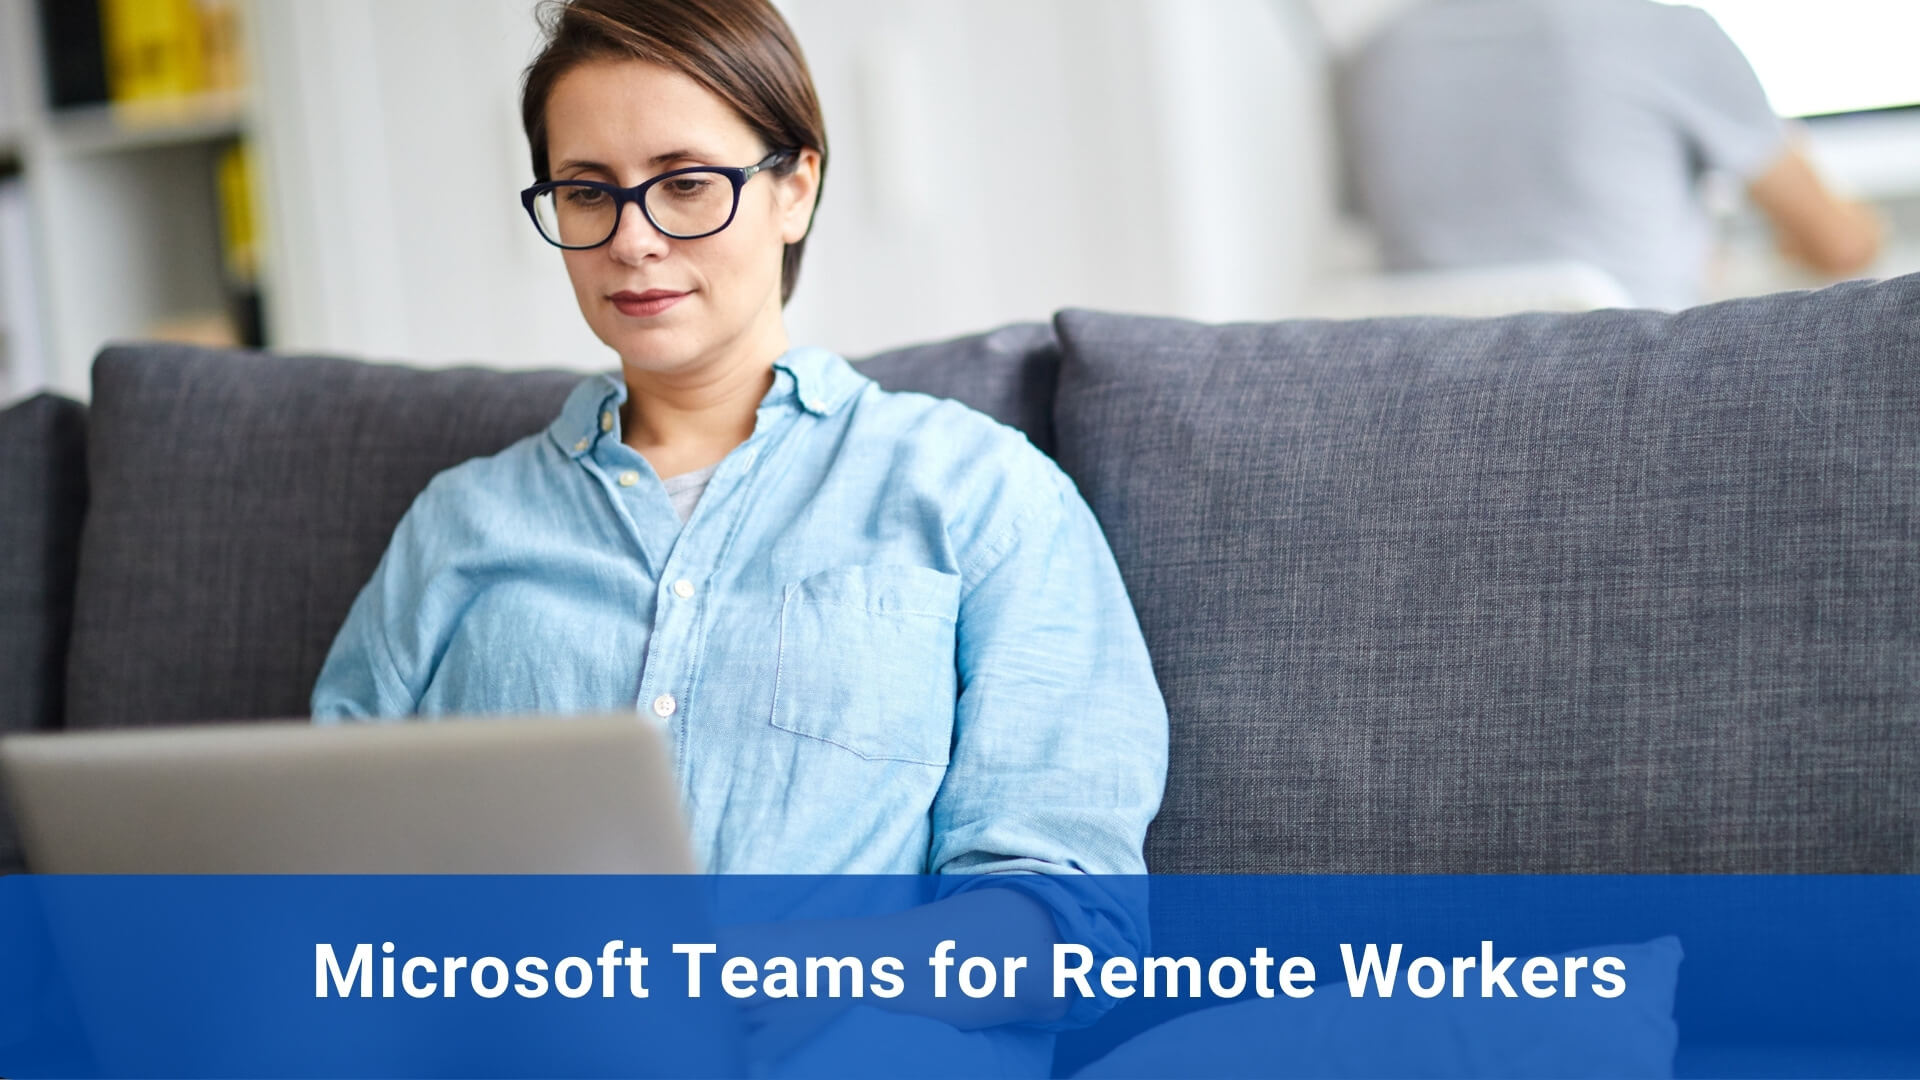 Microsoft Teams for Remote Workers